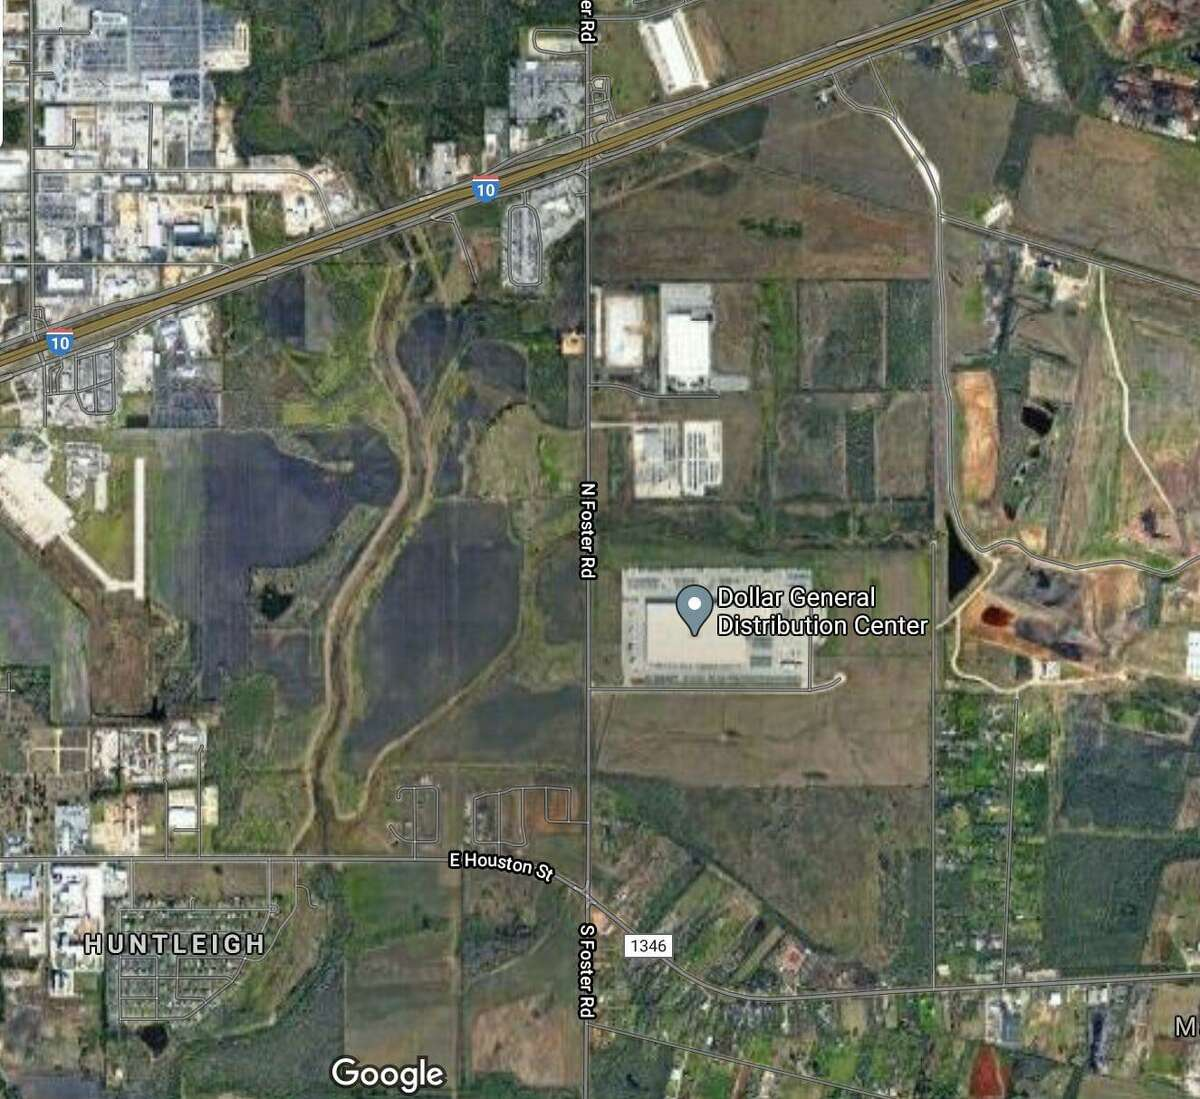 A filing with the Texas Department of Licensing and Regulation states a fulfillment center is planned at 6806 Cal Turner Drive. Cal Turner Drive runs just south of Dollar General's distribution facility.